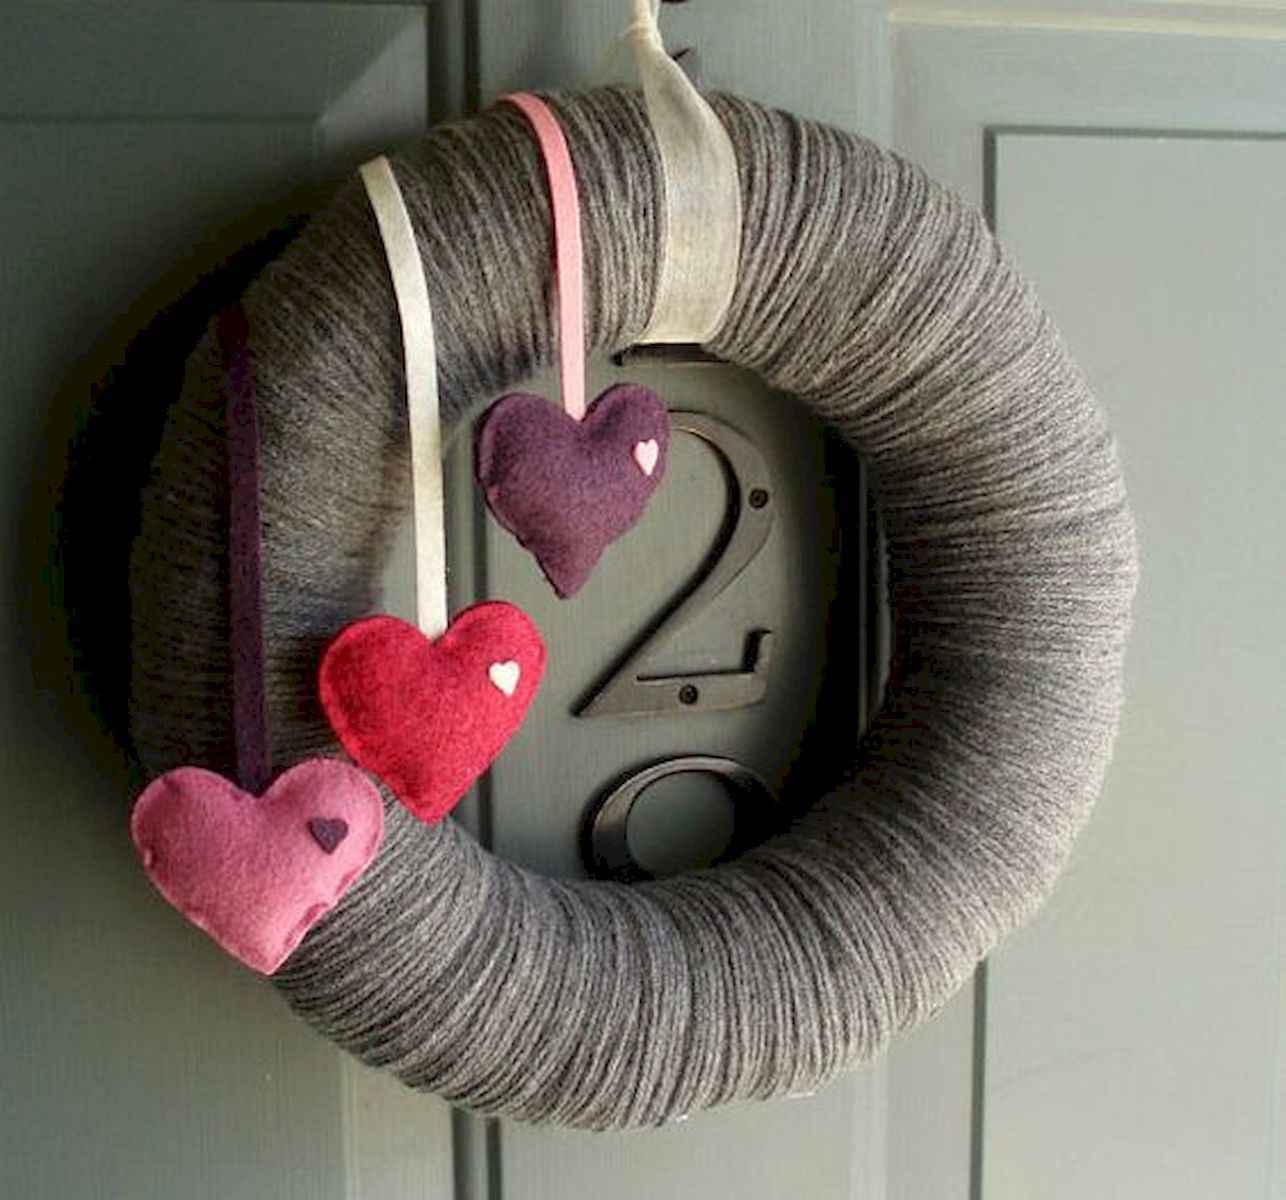 110 easy diy valentines decorations ideas and remodel (108)